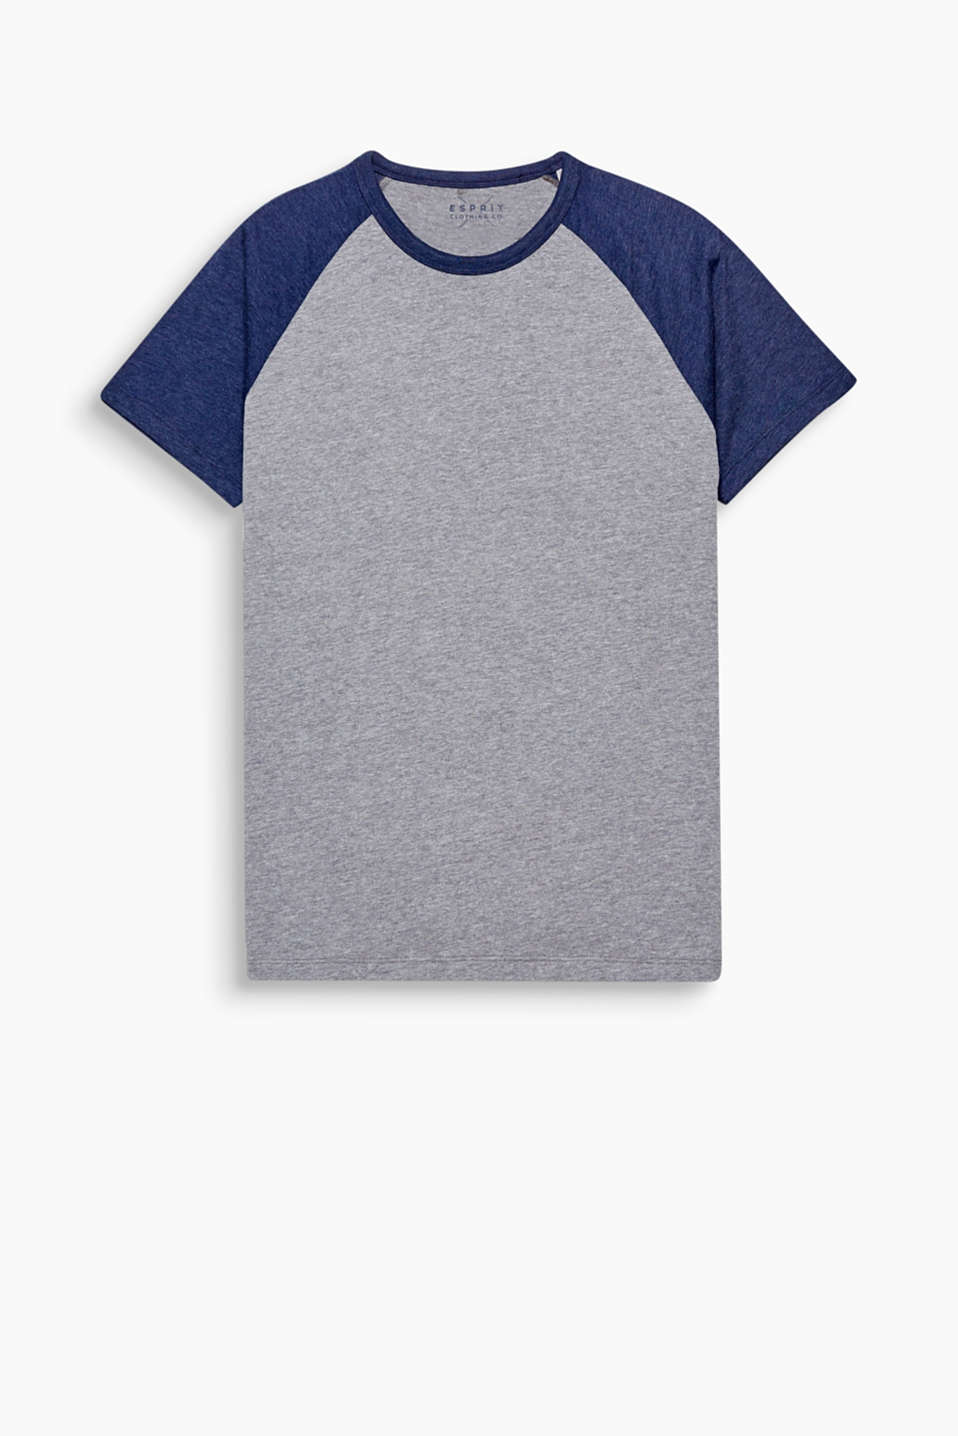 The perfect styling partner for your denim look: T-shirt with a round neckline and raglan sleeves in a college style